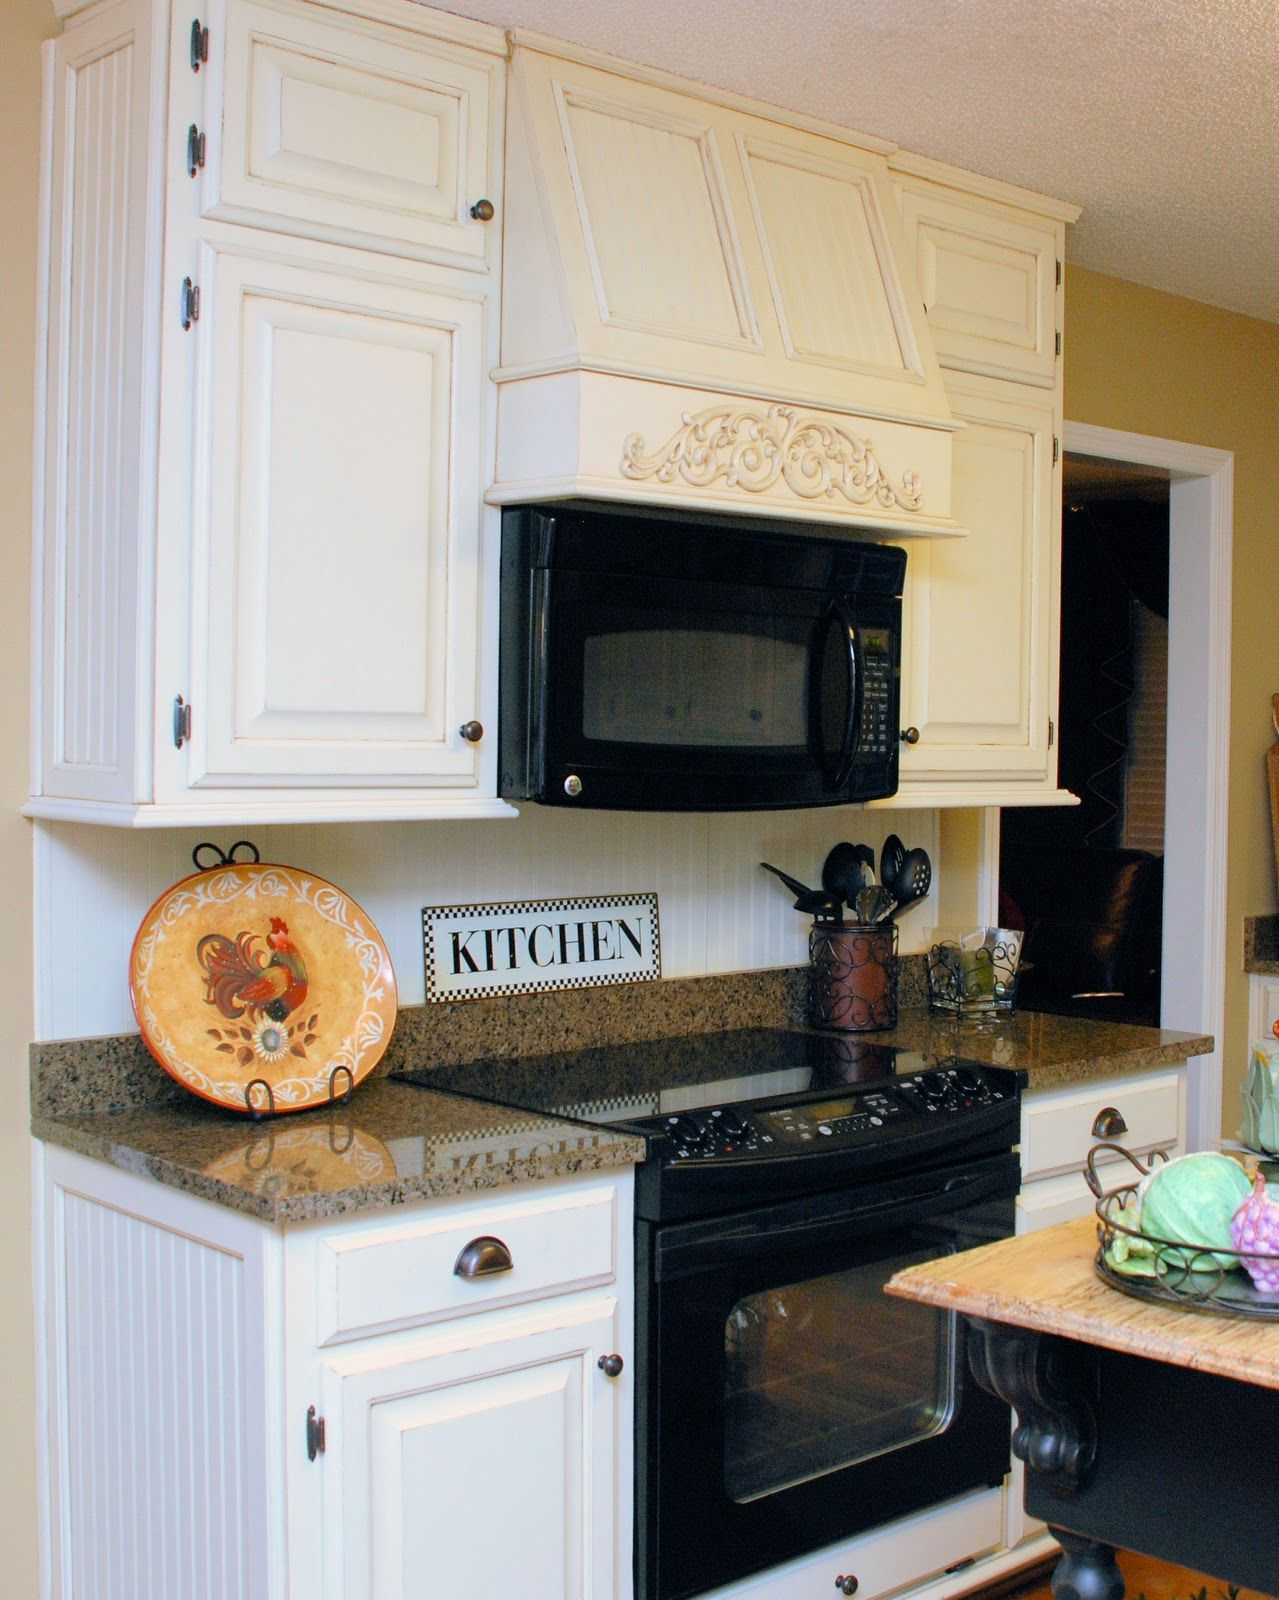 Southern Inspirations My Fake Kitchen Microwave Hood Kitchen Appliances Design Microwave In Kitchen Tuscan Kitchen